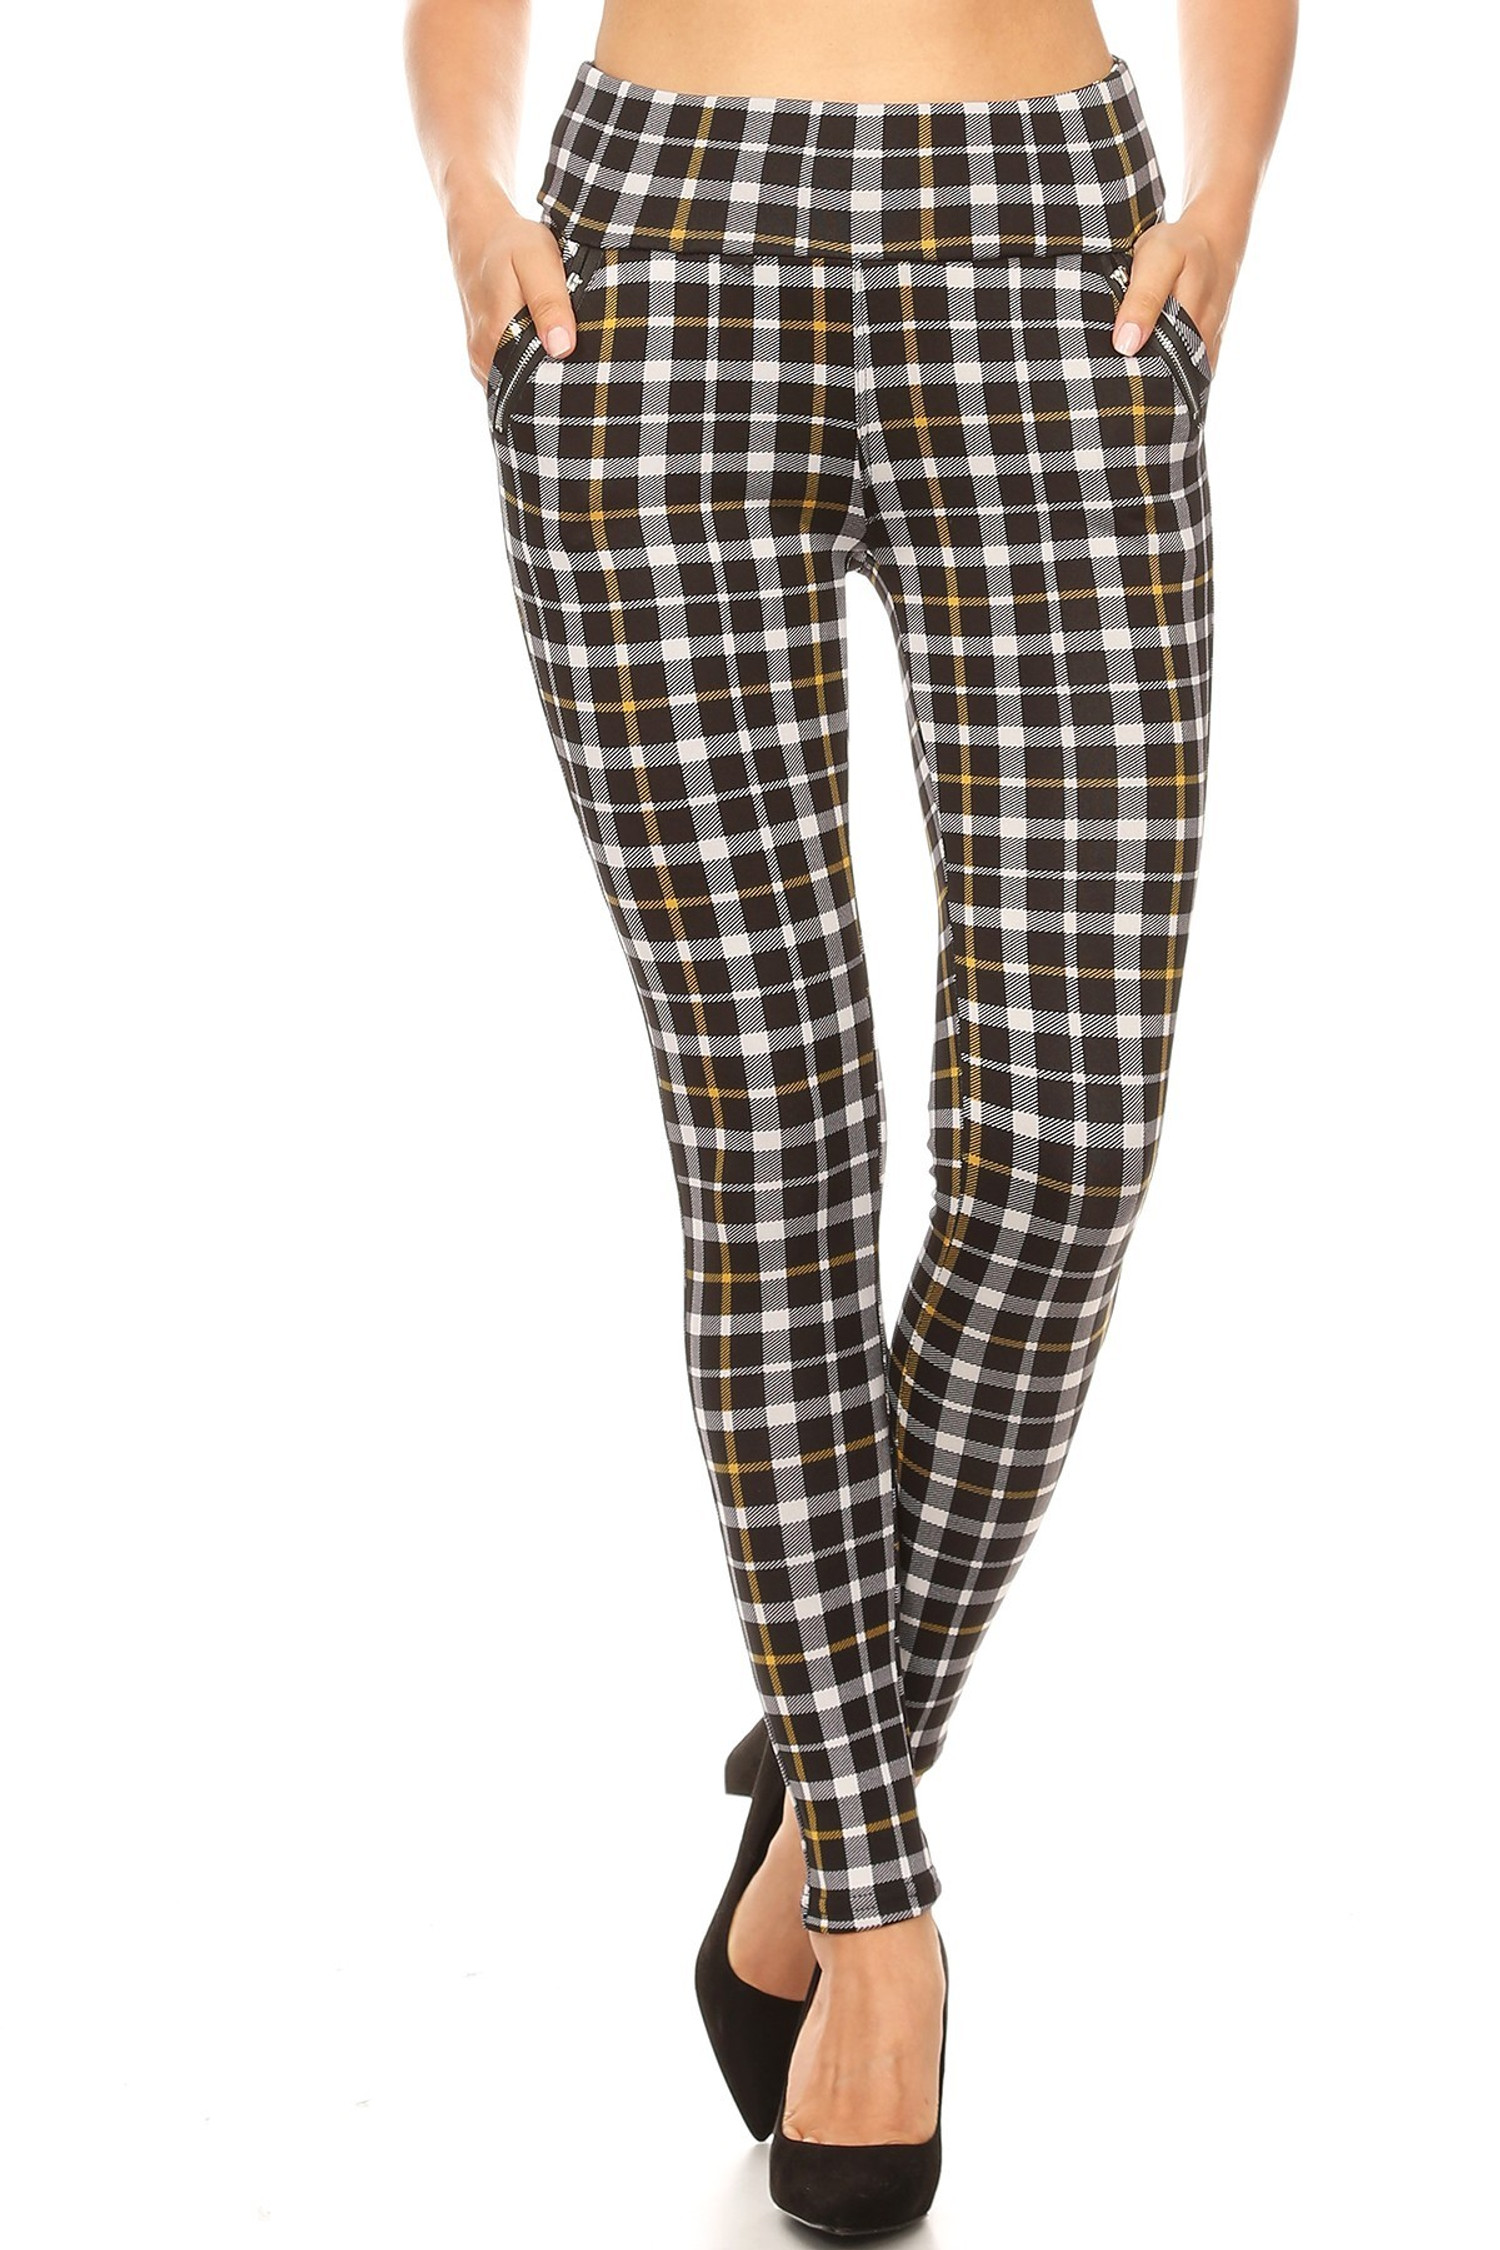 Mustard Accent Plaid High Waisted Treggings with Zipper Pockets